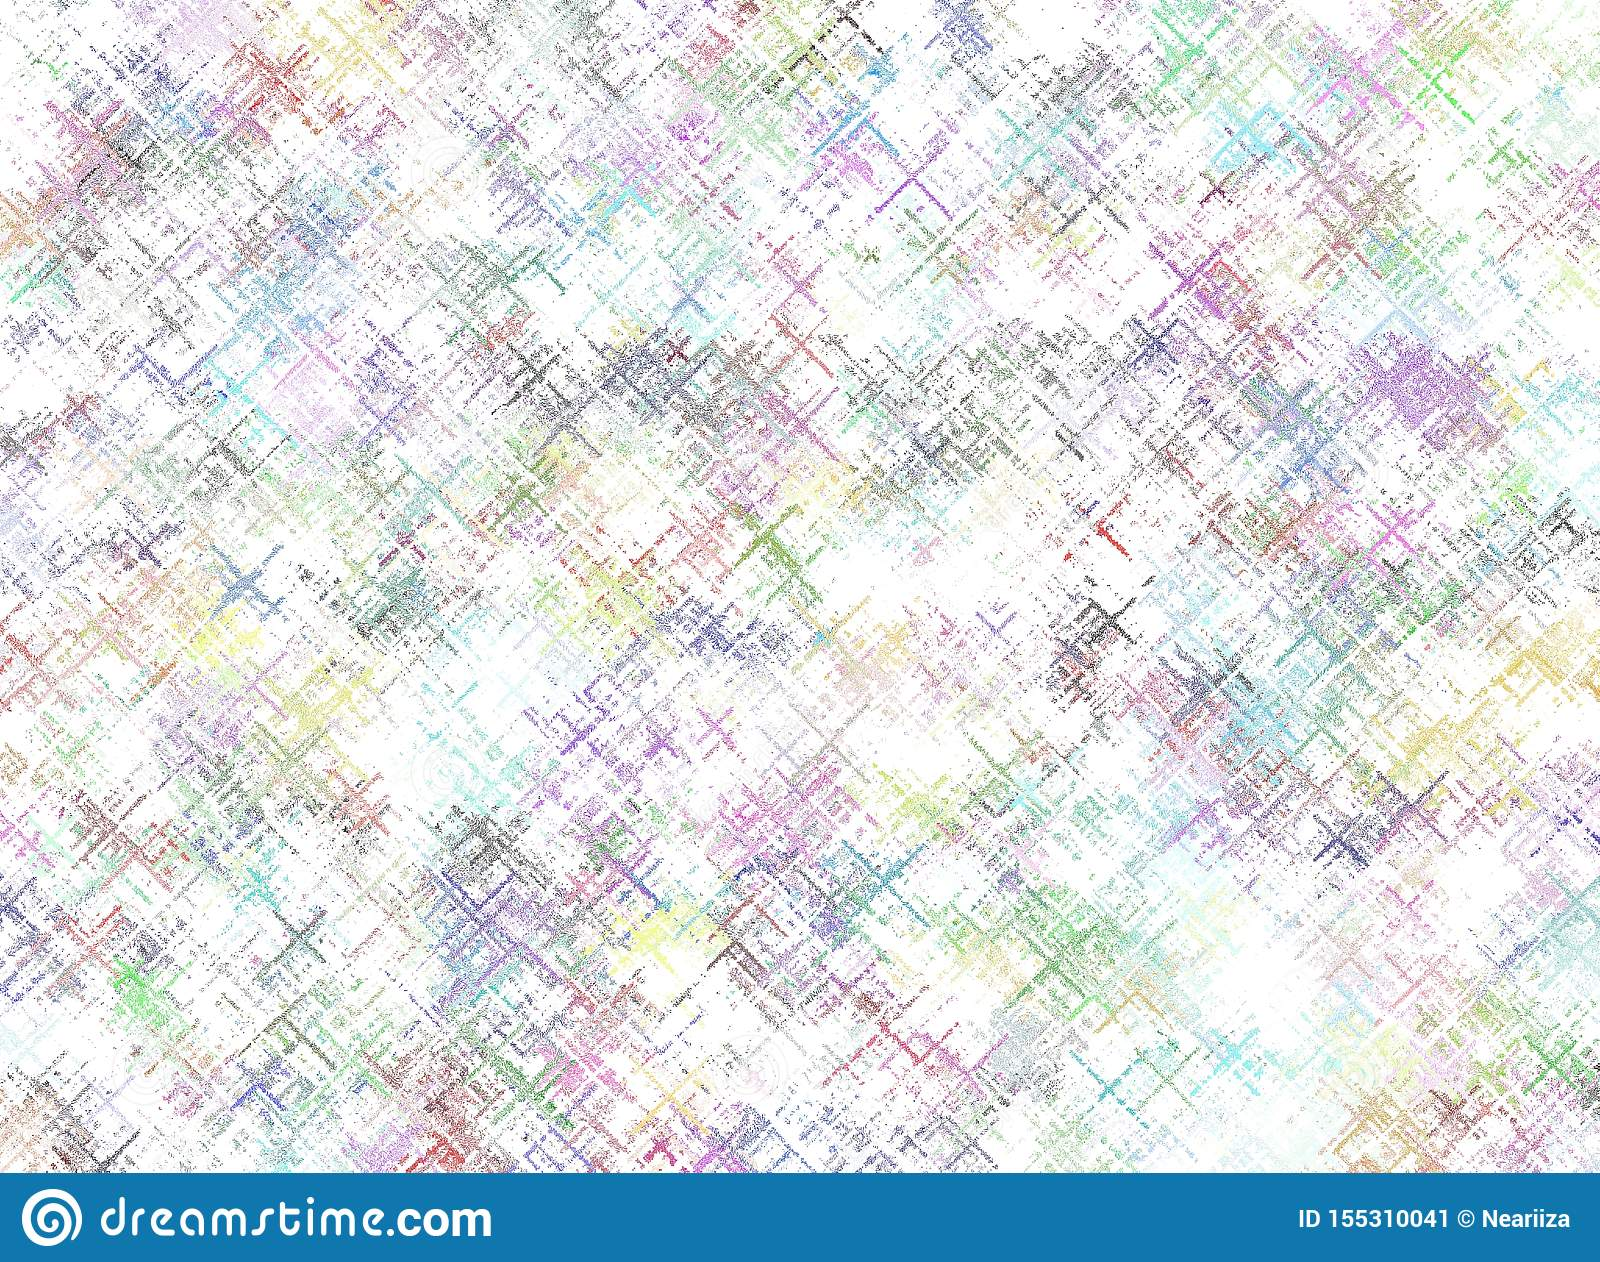 Colorful Abstract Background For Desktop Wallpaper Or